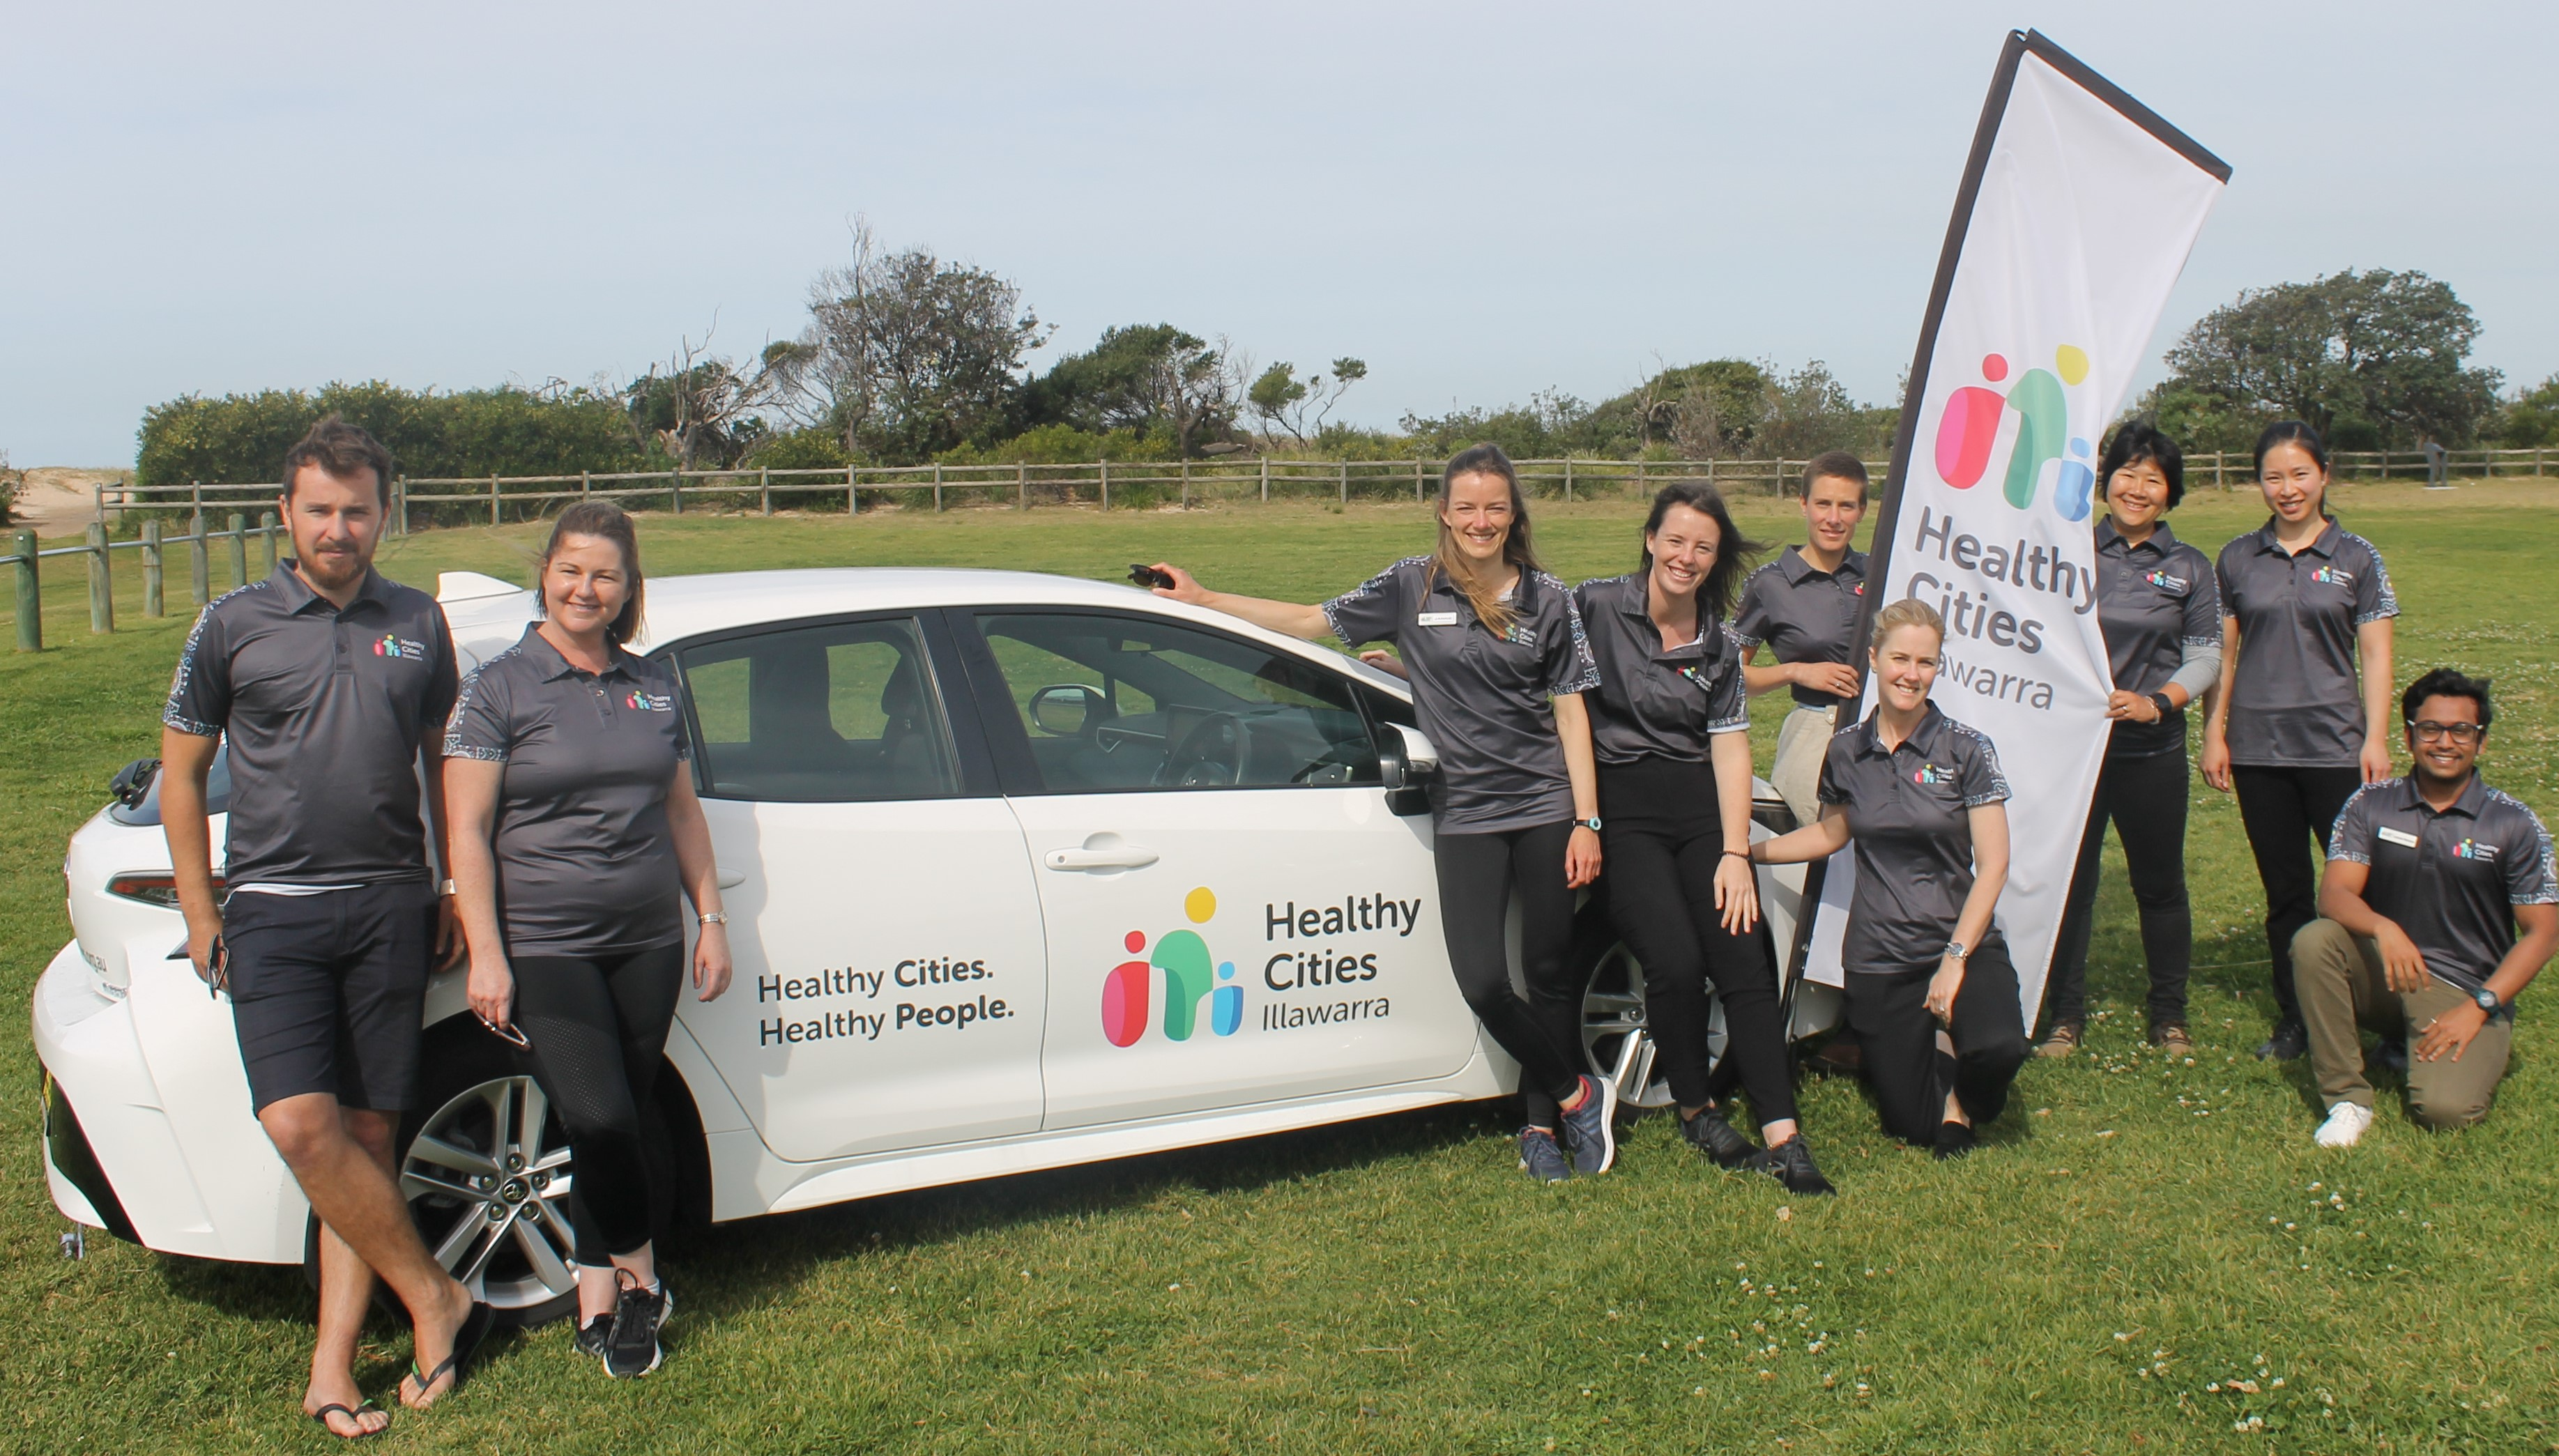 Members of the Healthy Cities Illawarra team stand beside a car and banner featuring their group's name.